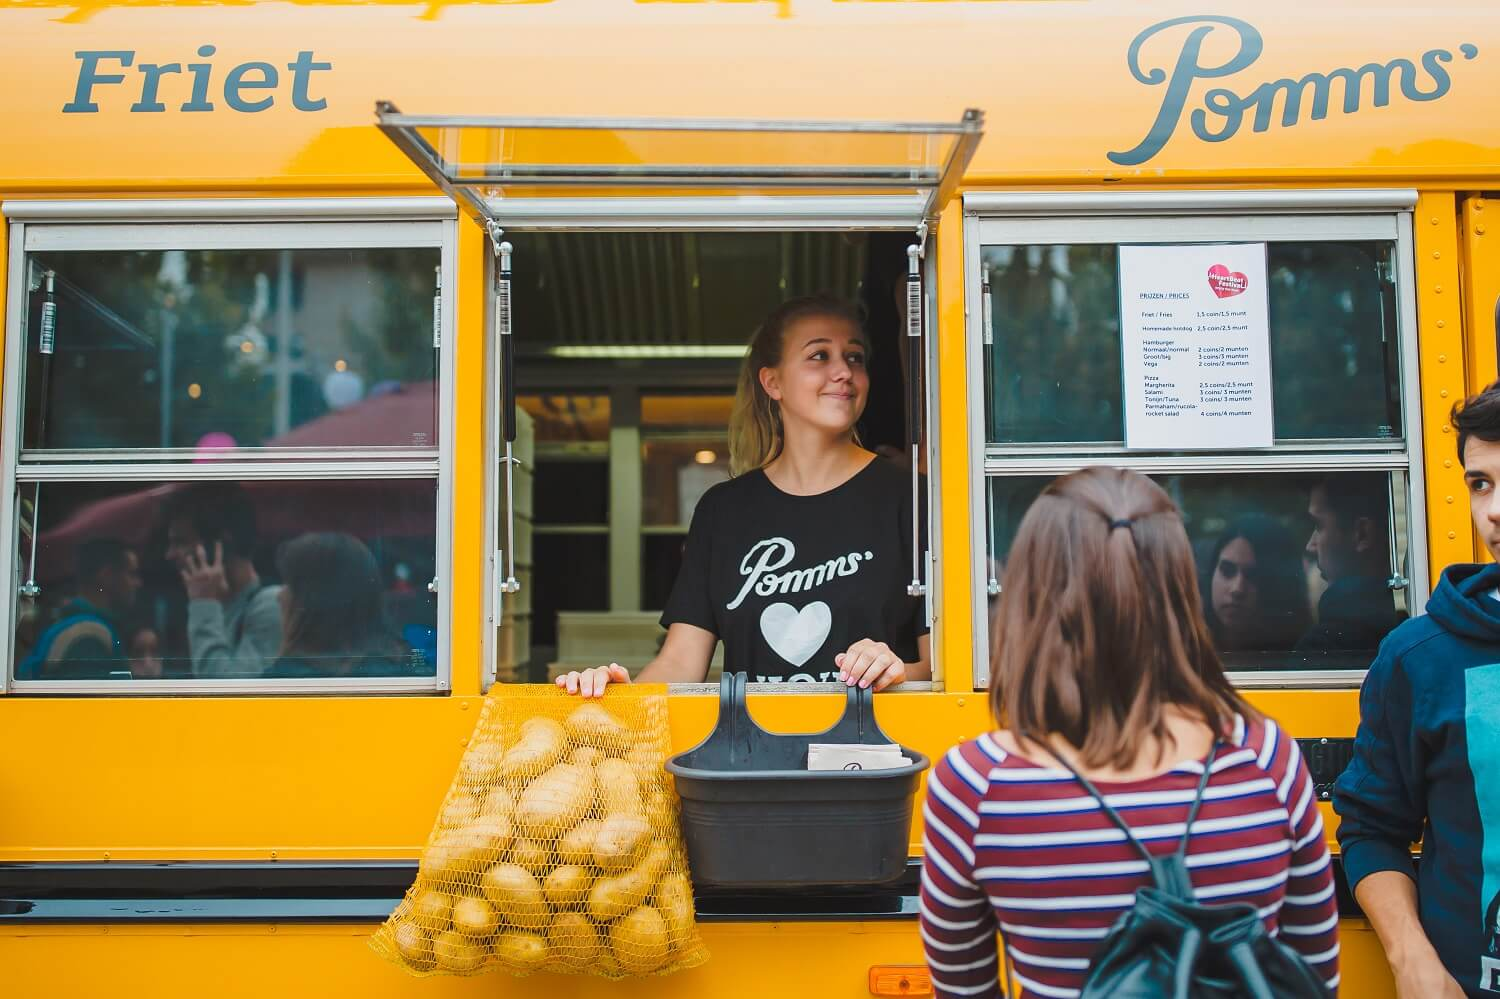 Zomerfestival- food, drinks and foodtrucks